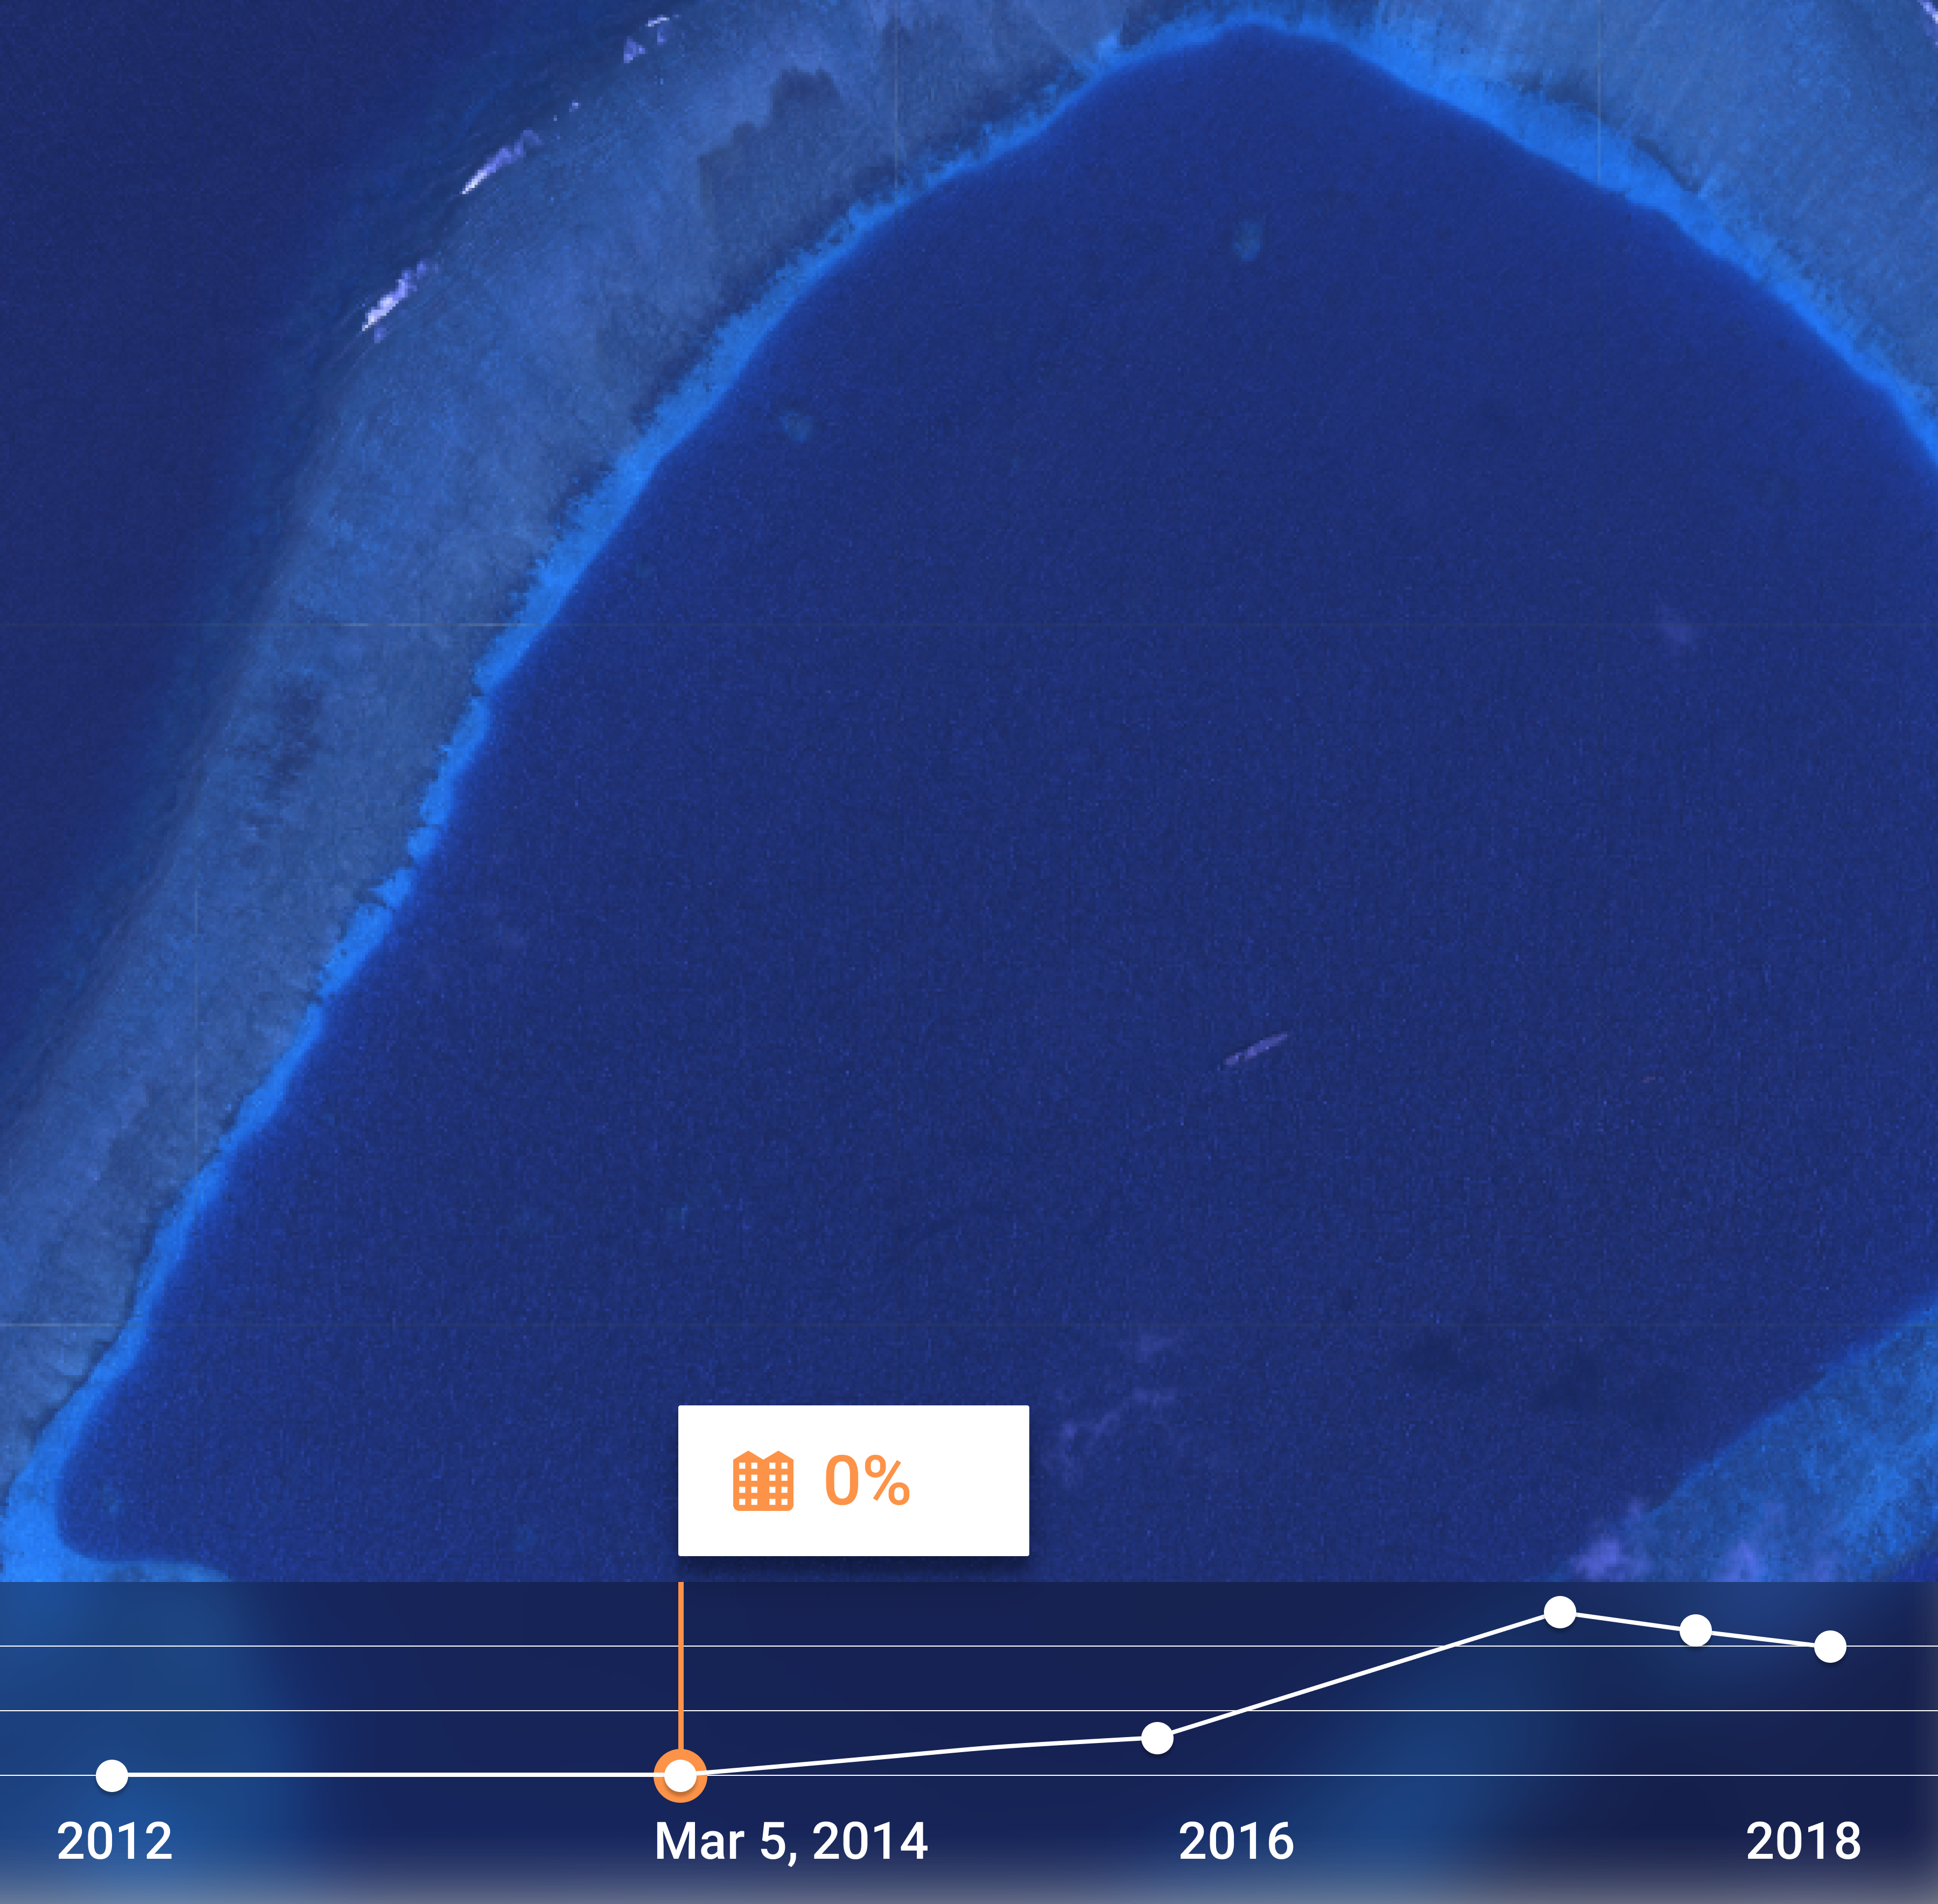 China's Island Build-Up: The View From Space